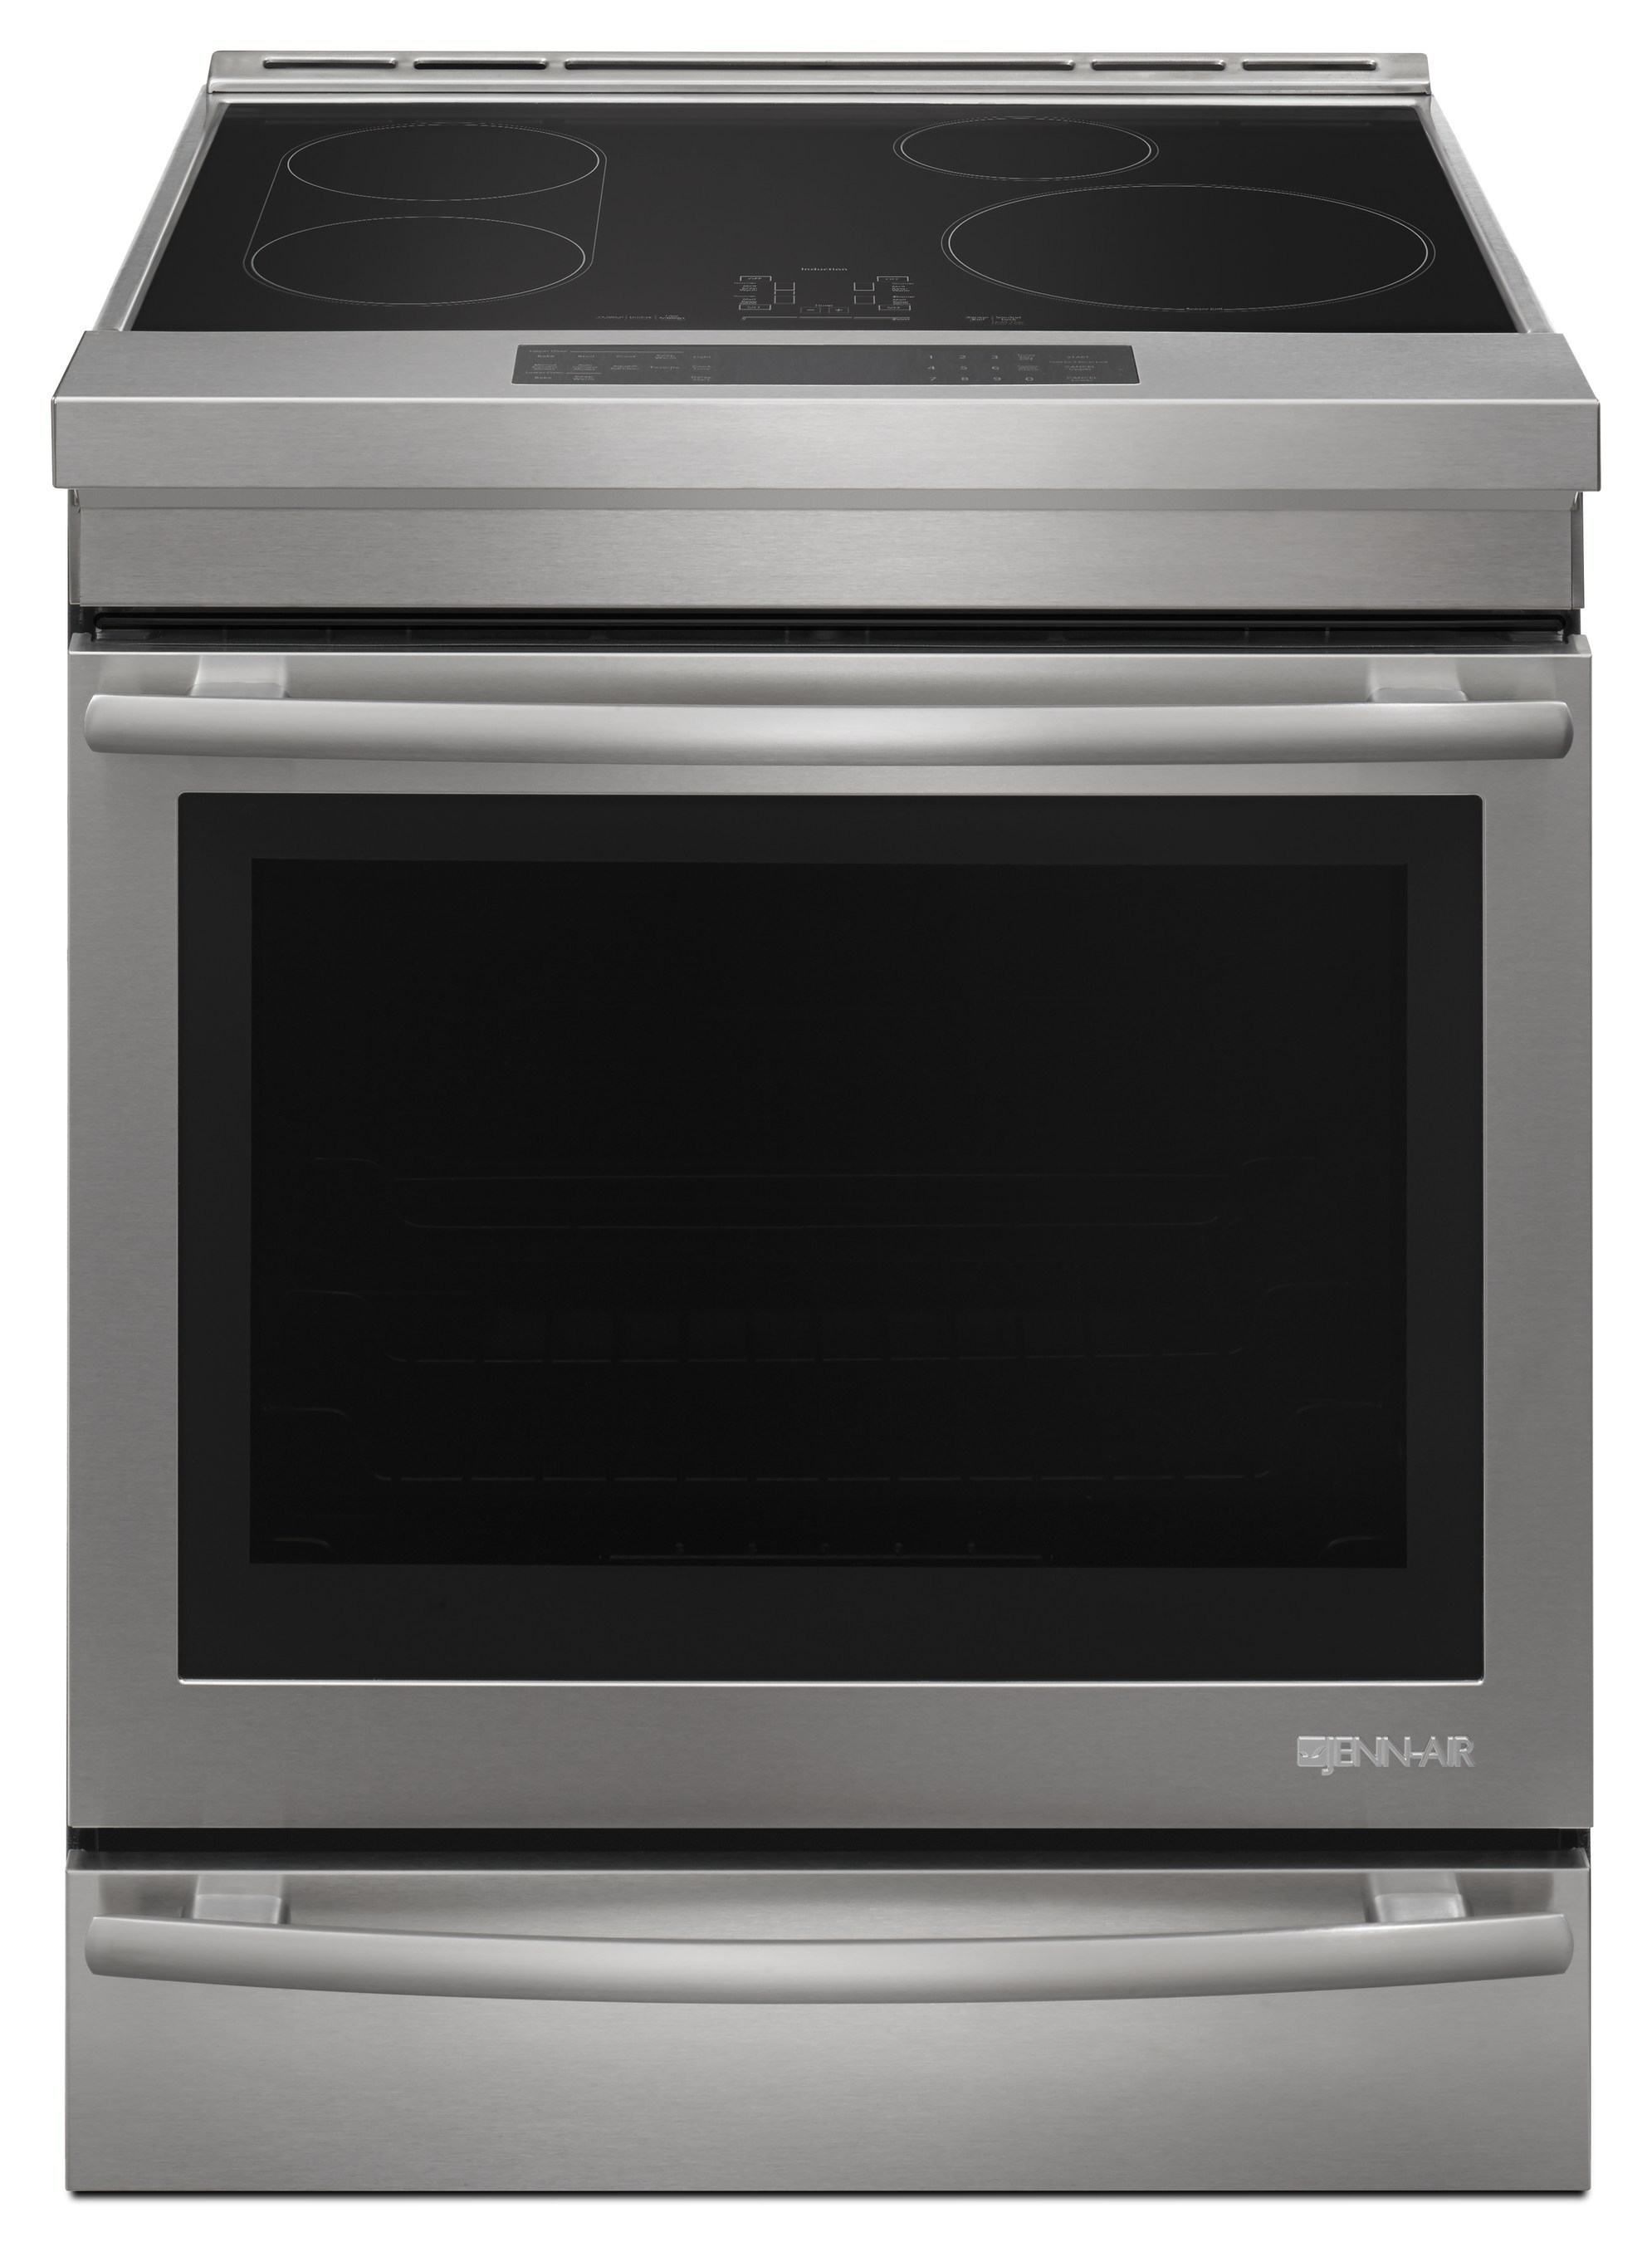 Featuring a full-depth design that easily installs seamlessly into a standard opening, the new Jenn-Air induction range offers increased oven baking capacity and a host of luxury details, from soft-close oven doors to telescoping glide racks.